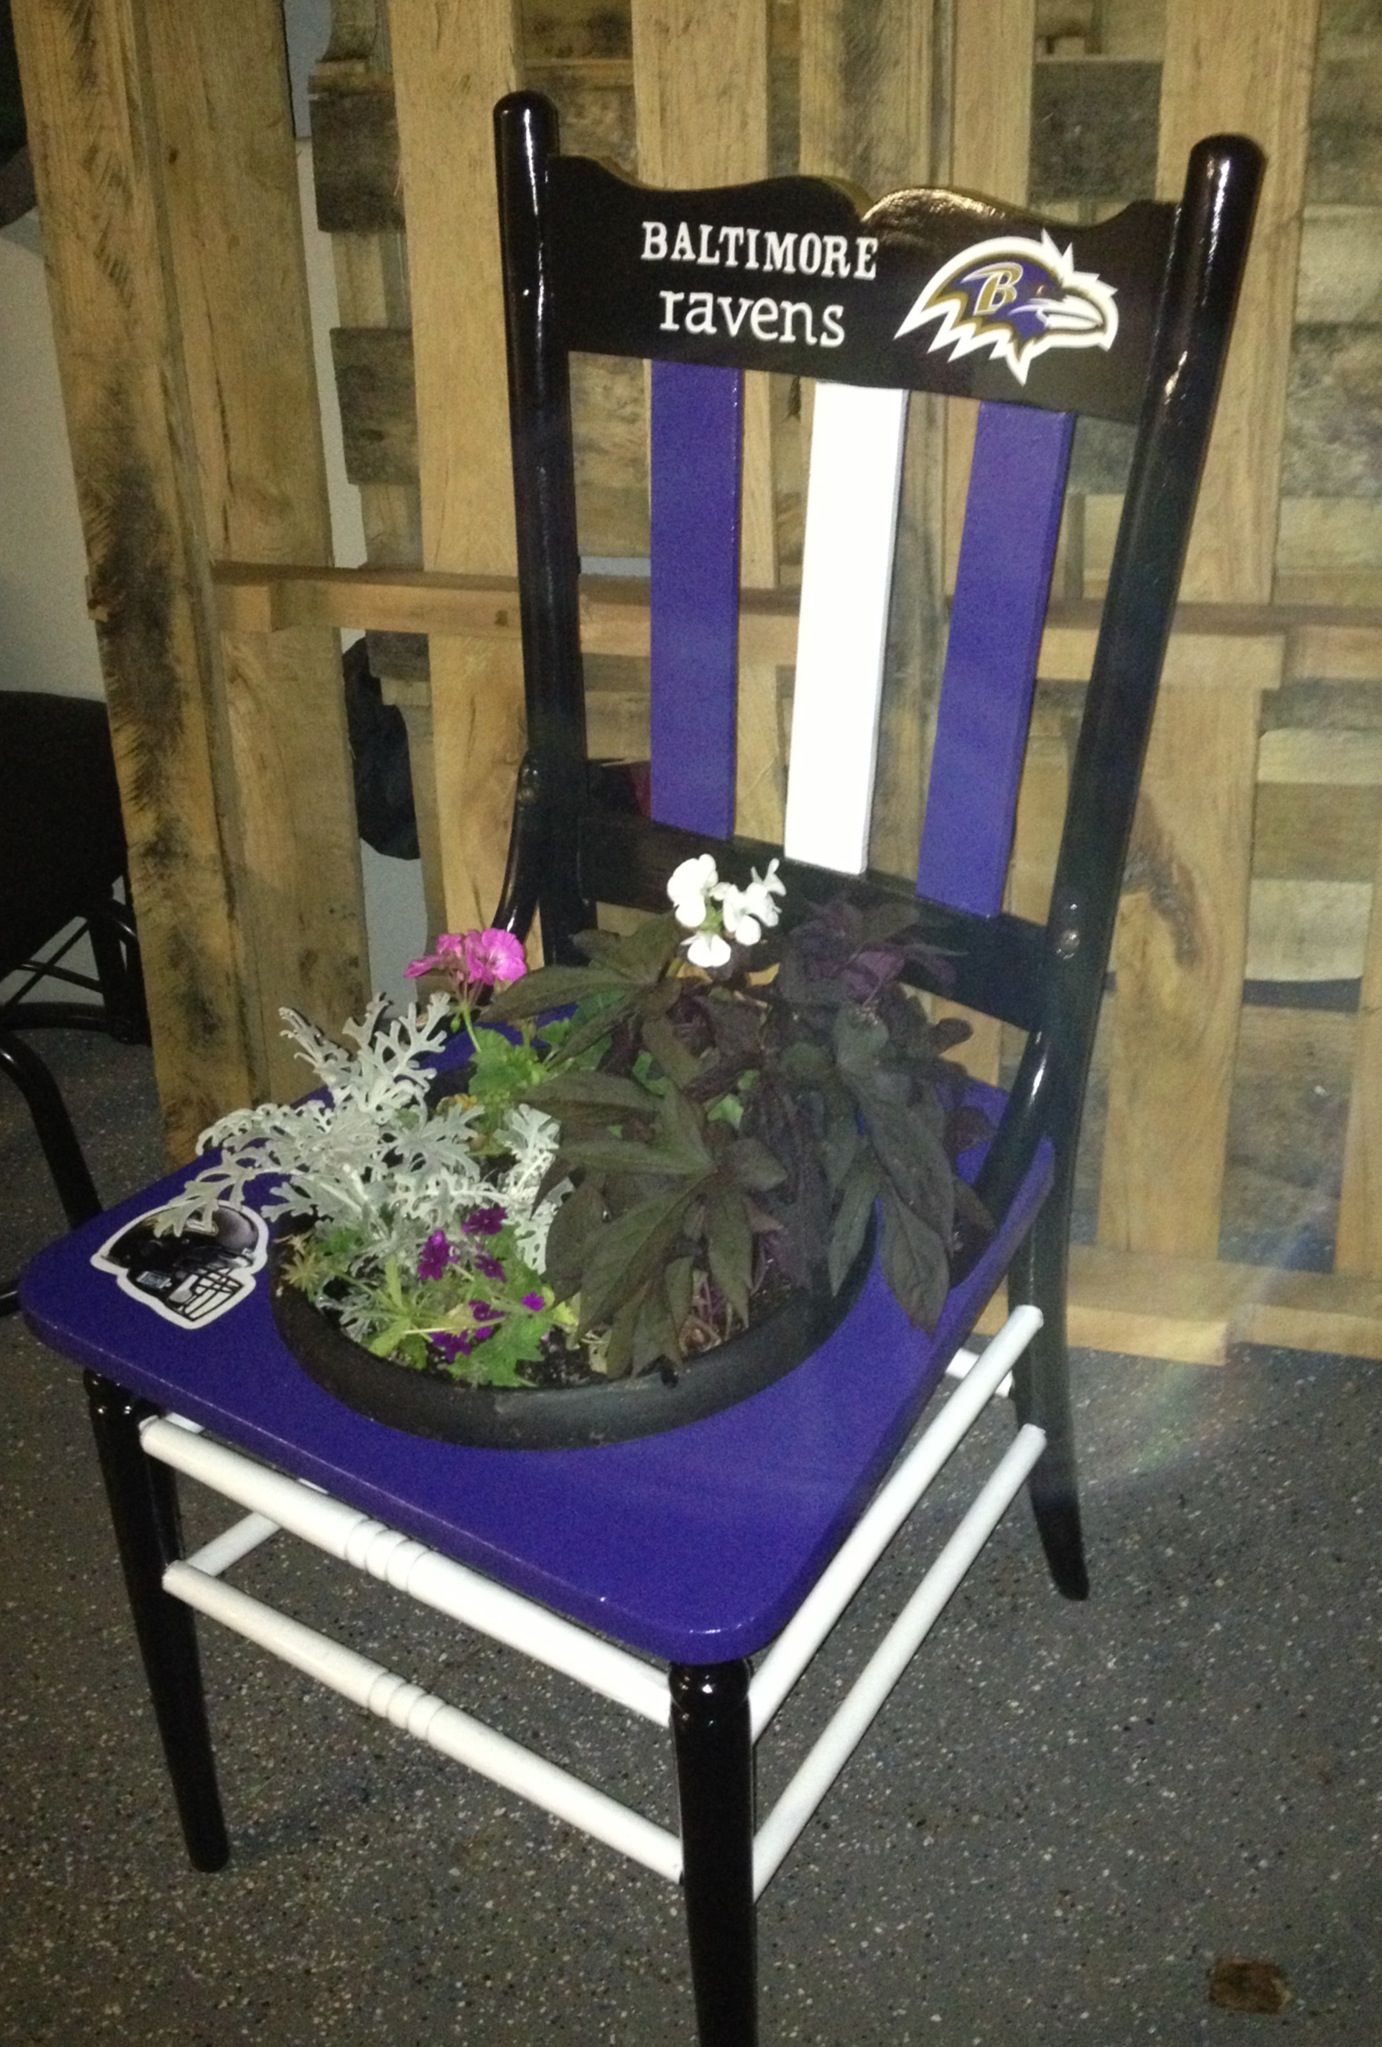 Awesome Baltimore Ravens Chair/planter